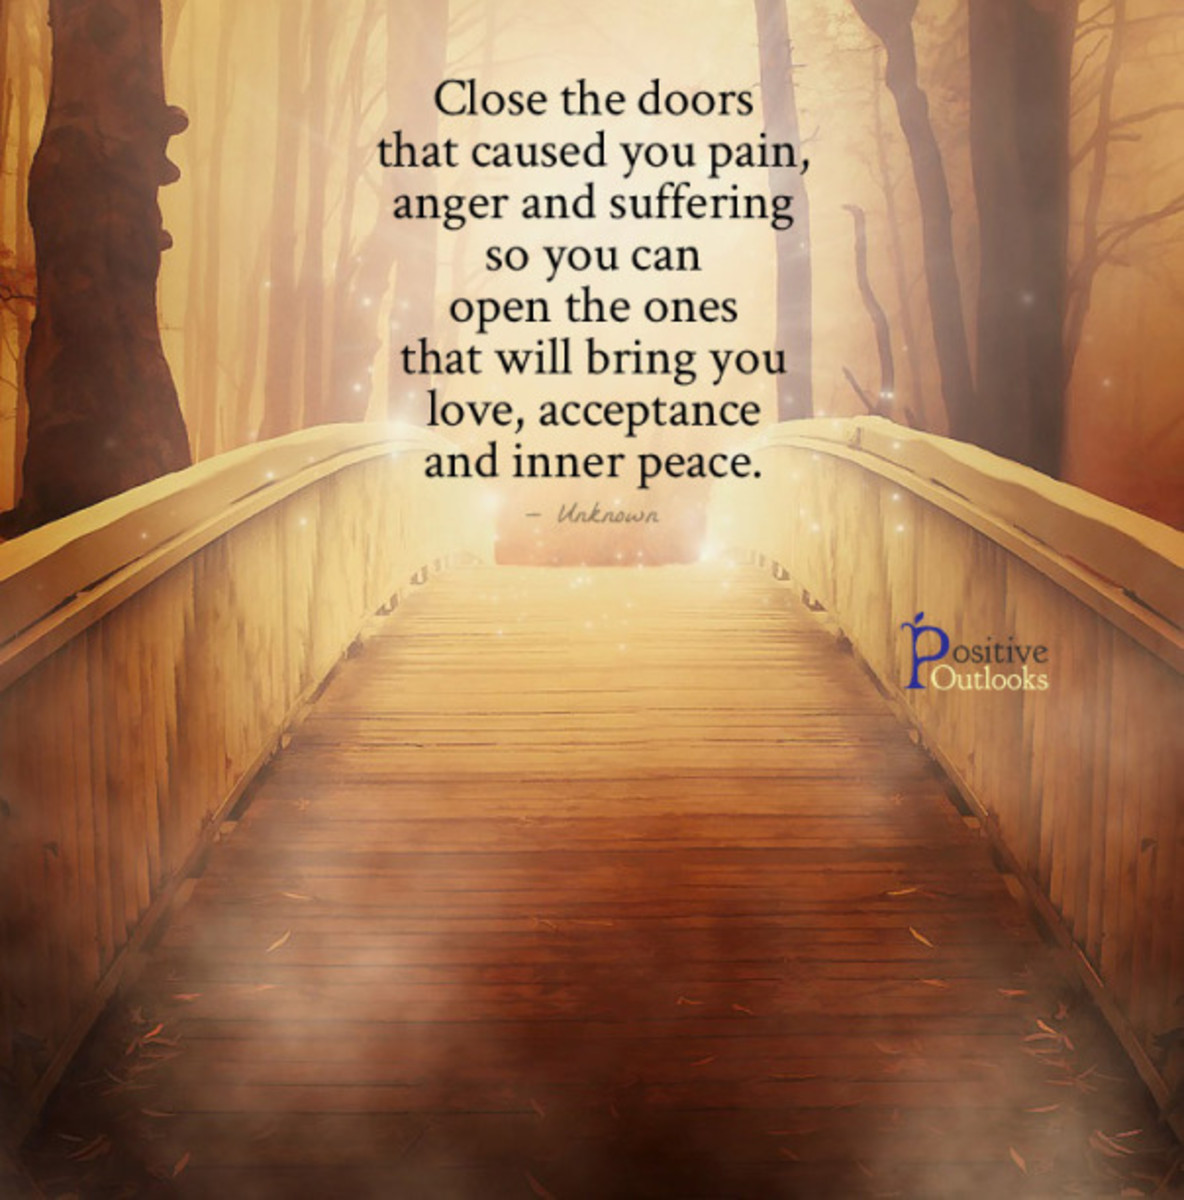 We Should Close the Doors that Cause Pain, Anger and Suffering. Open the ones that will Bring Love and Inner Peace